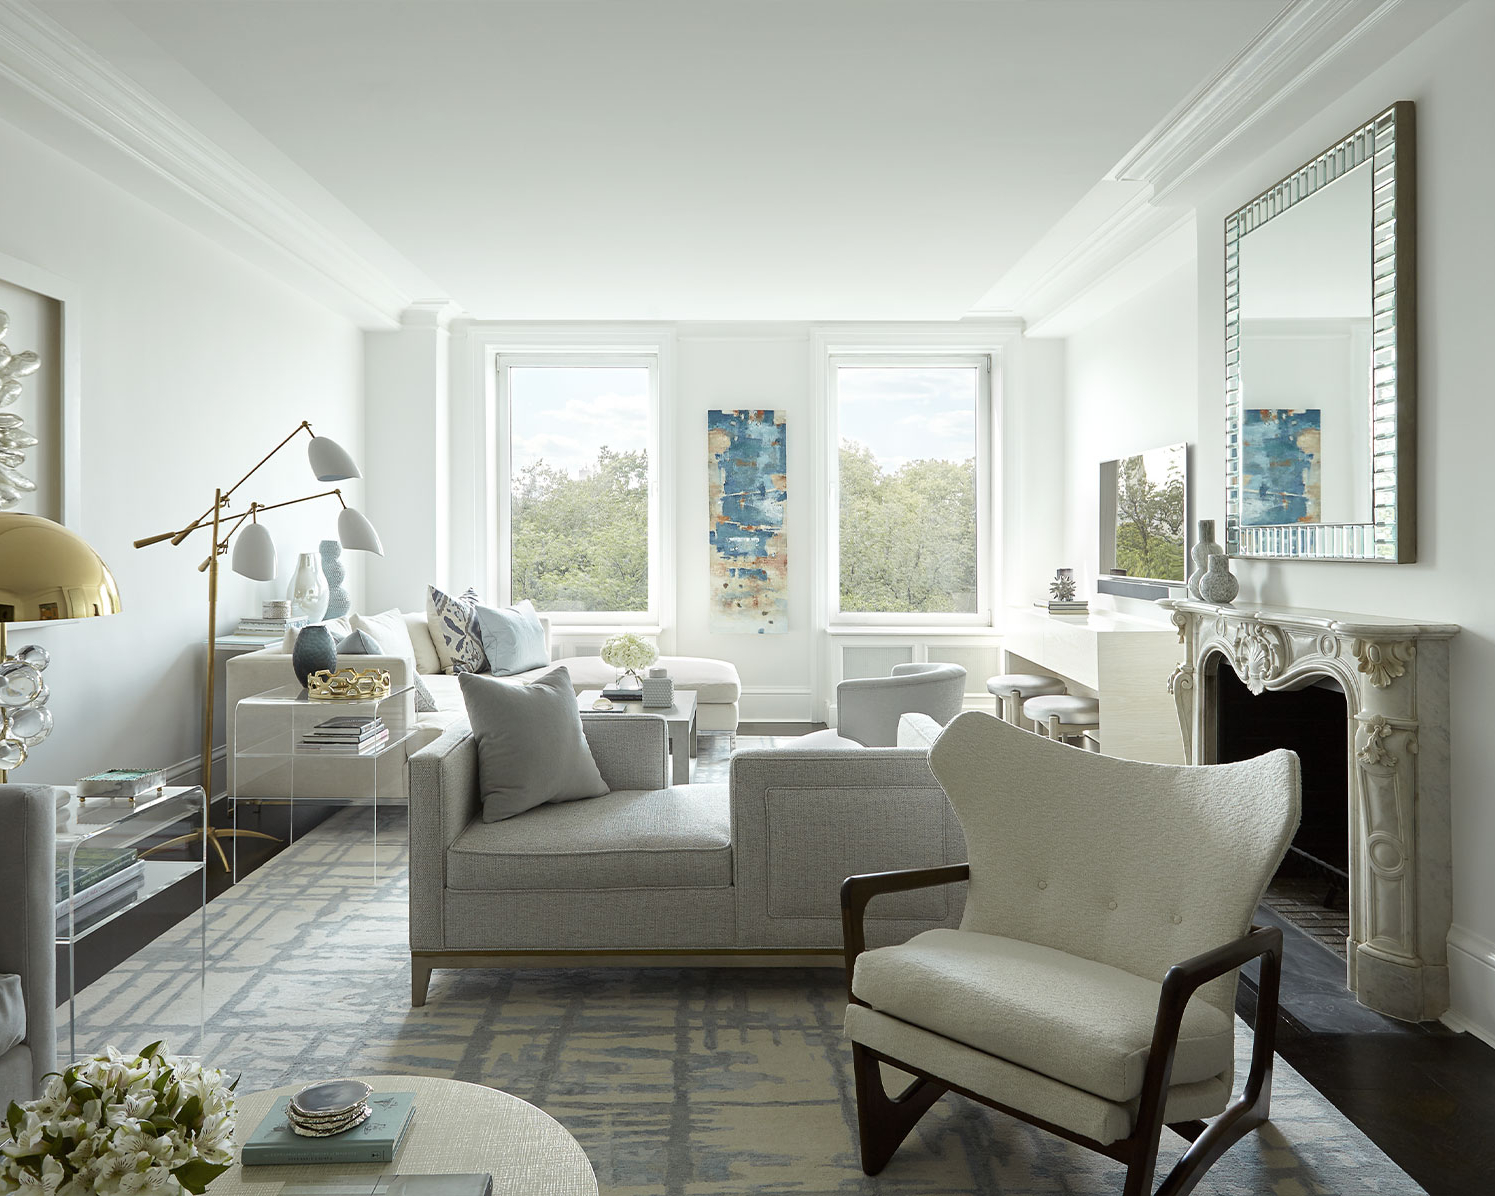 Stunningly chic living room filled with funky accessories, lighting and accent furnishings designed by Darci Hether